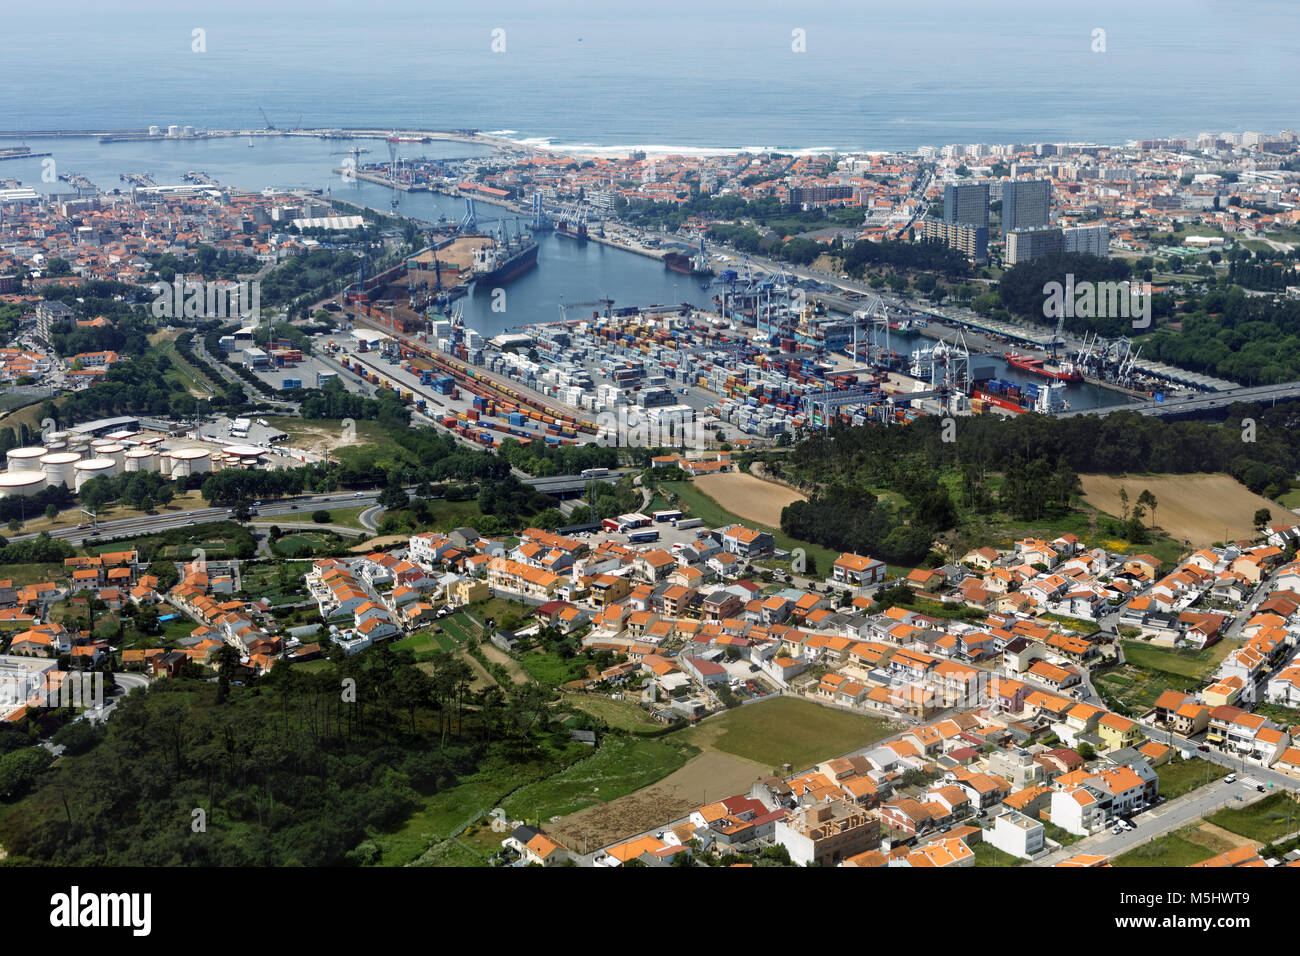 Aerial view to the port of Leixoes in Matosinhos, Porto, Portugal Stock Photo